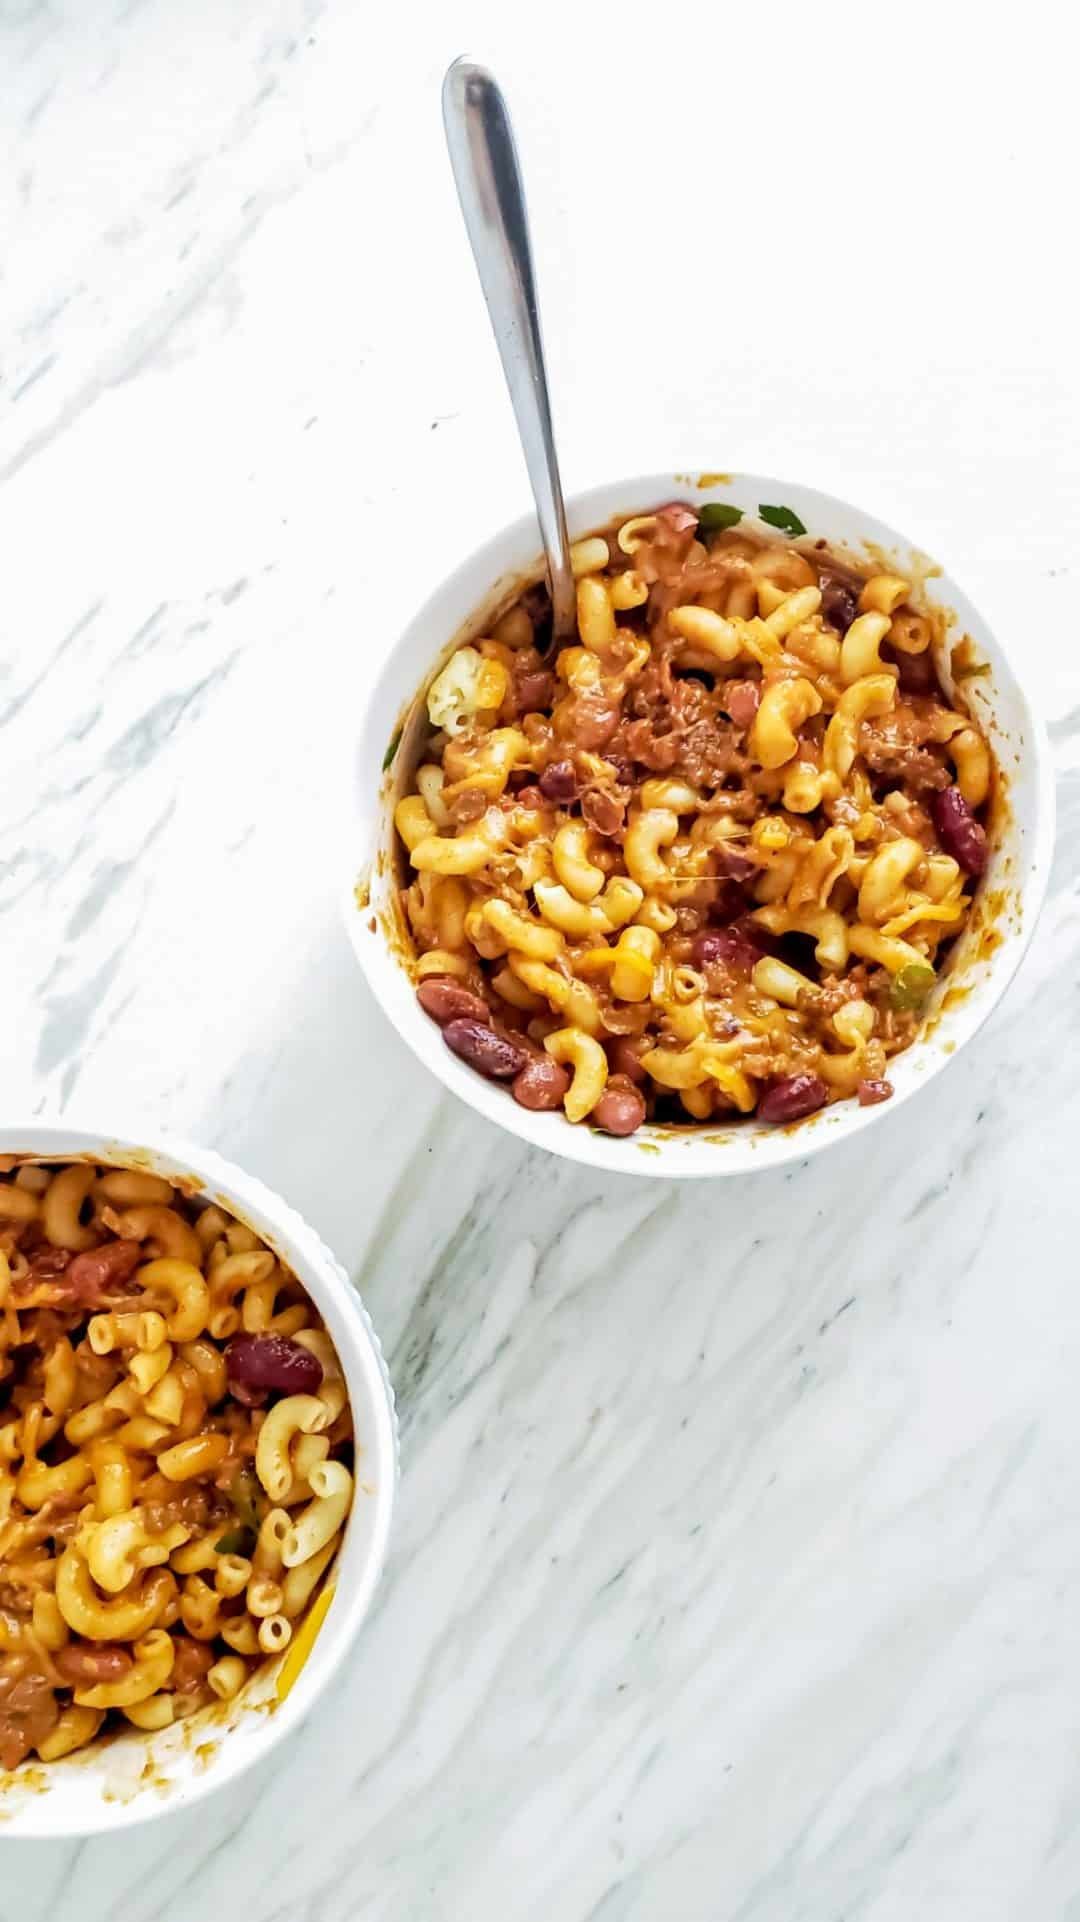 Two small bowls of stirred sweet and spicy chili mac and cheese. The bowls are white and on a marble table. The top bowl has a silver spoon in it.